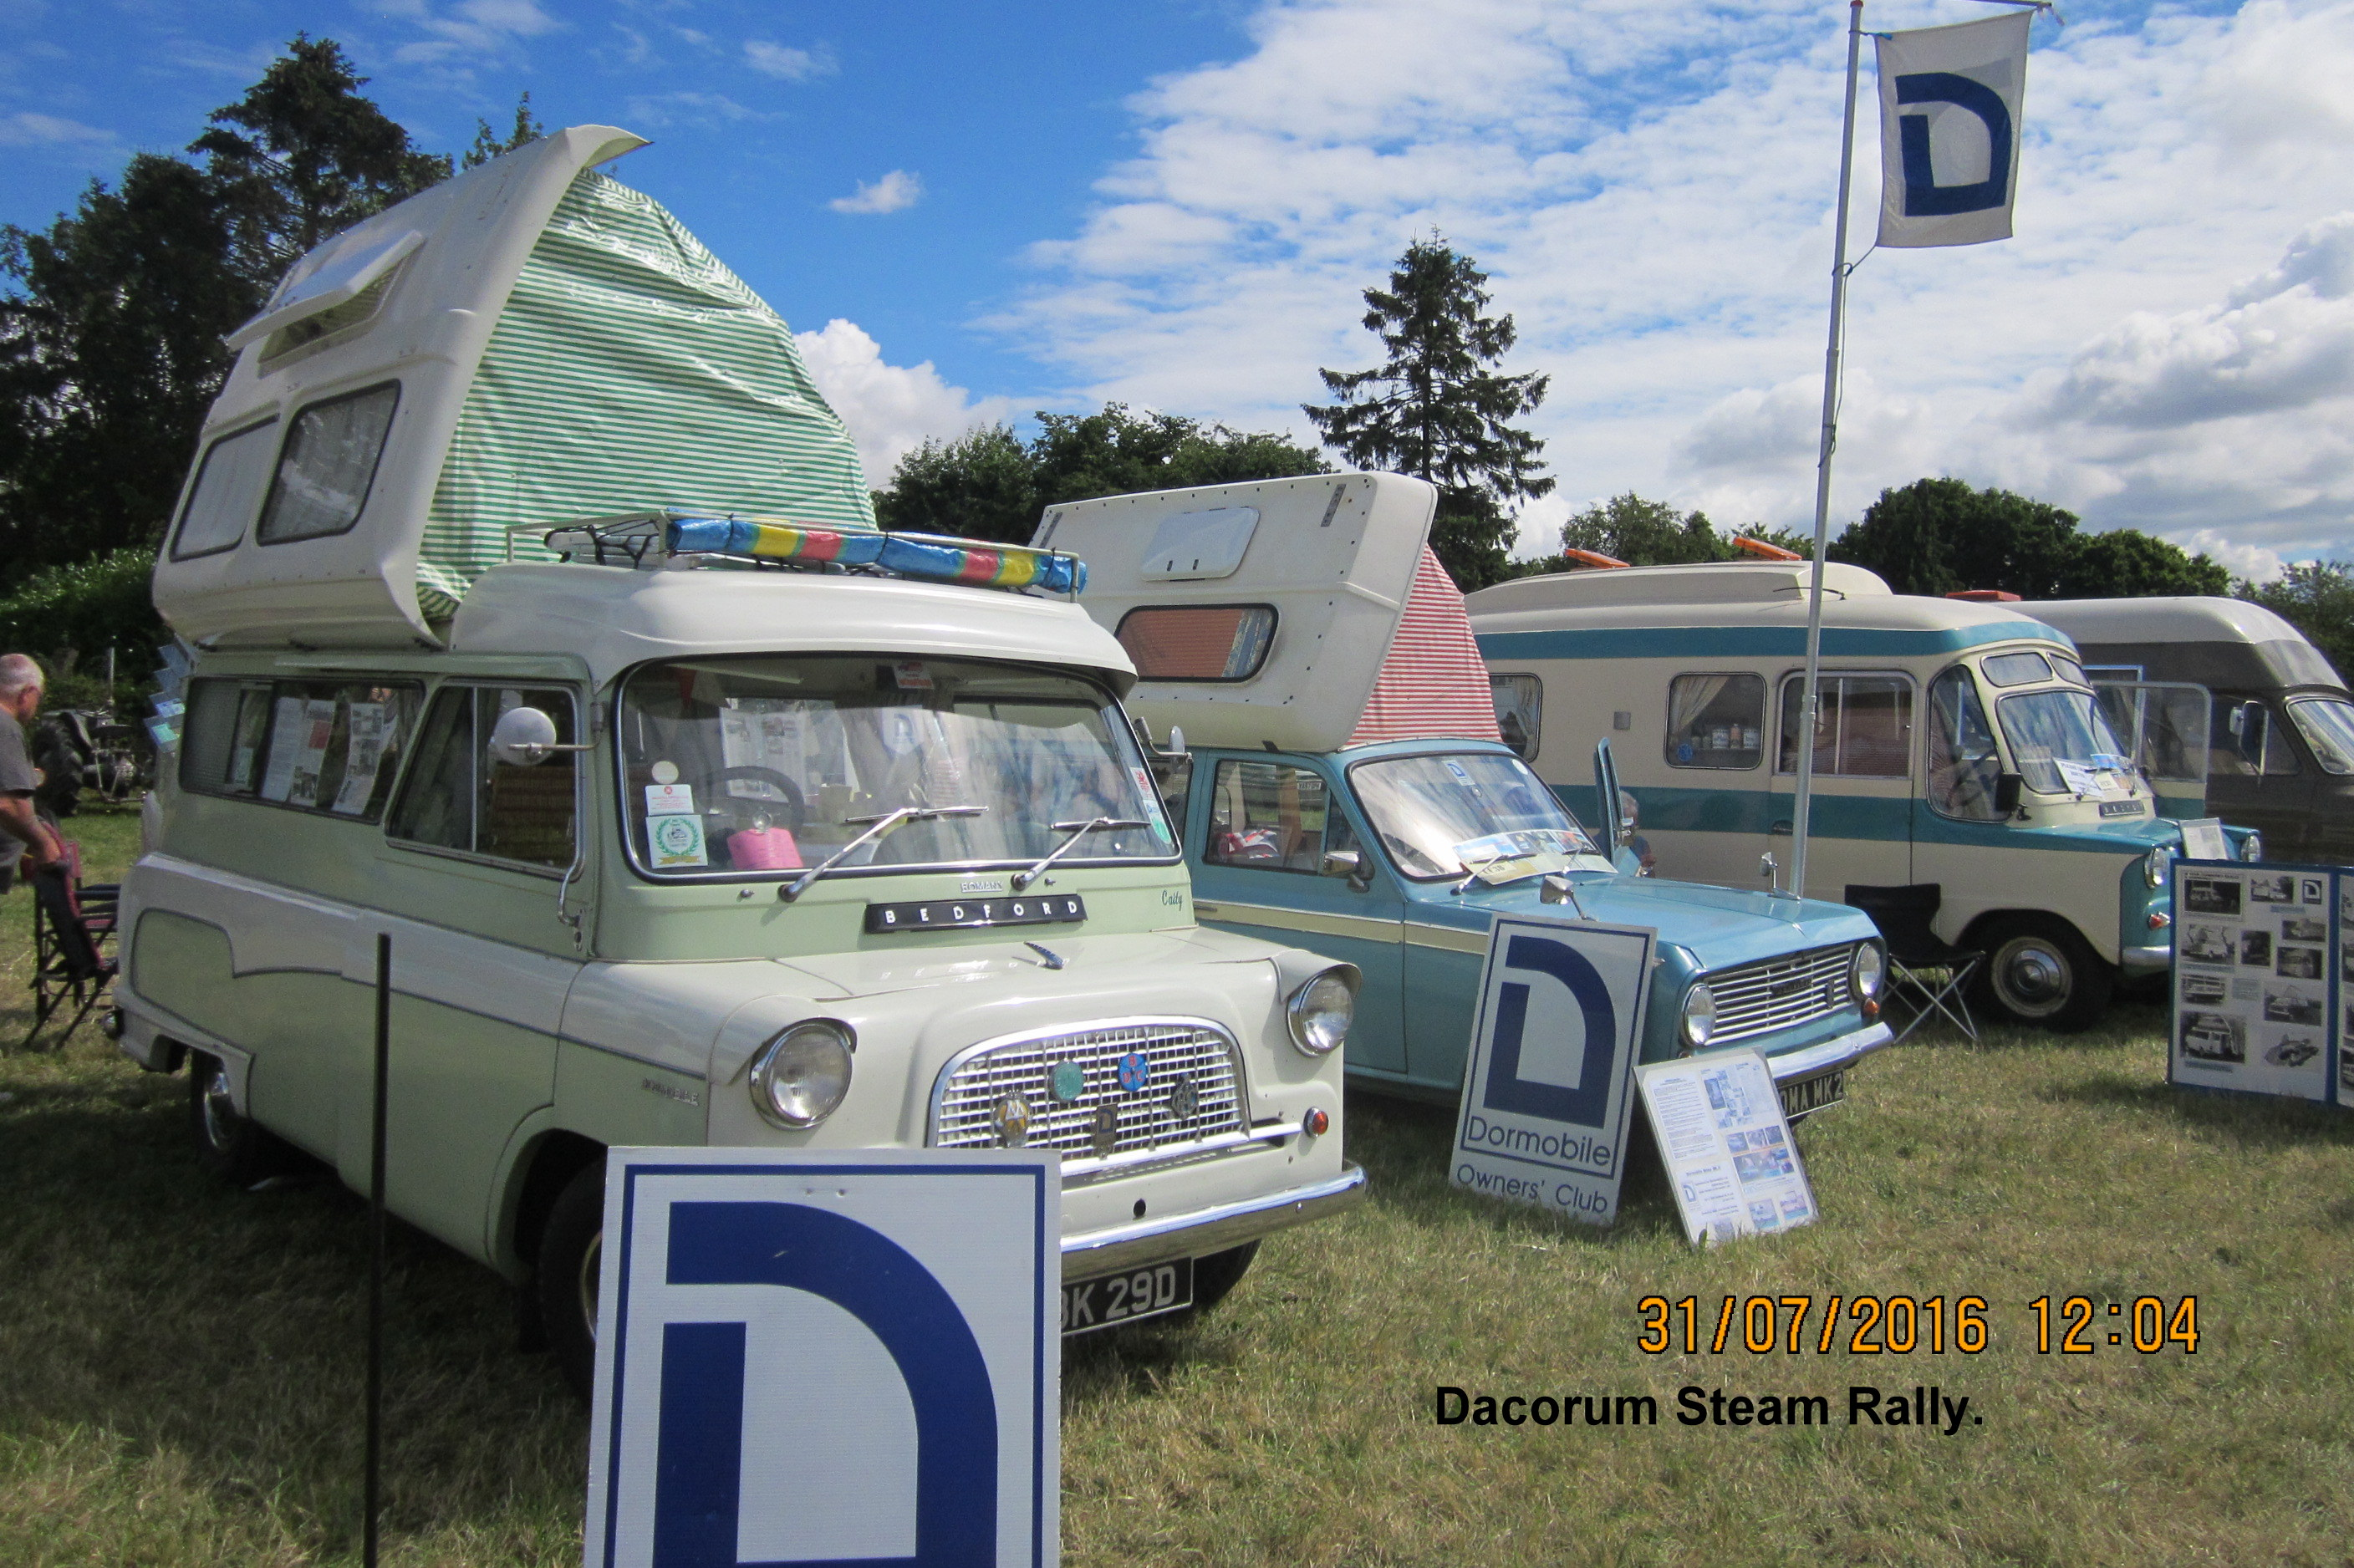 Dormobile Owners Club Home